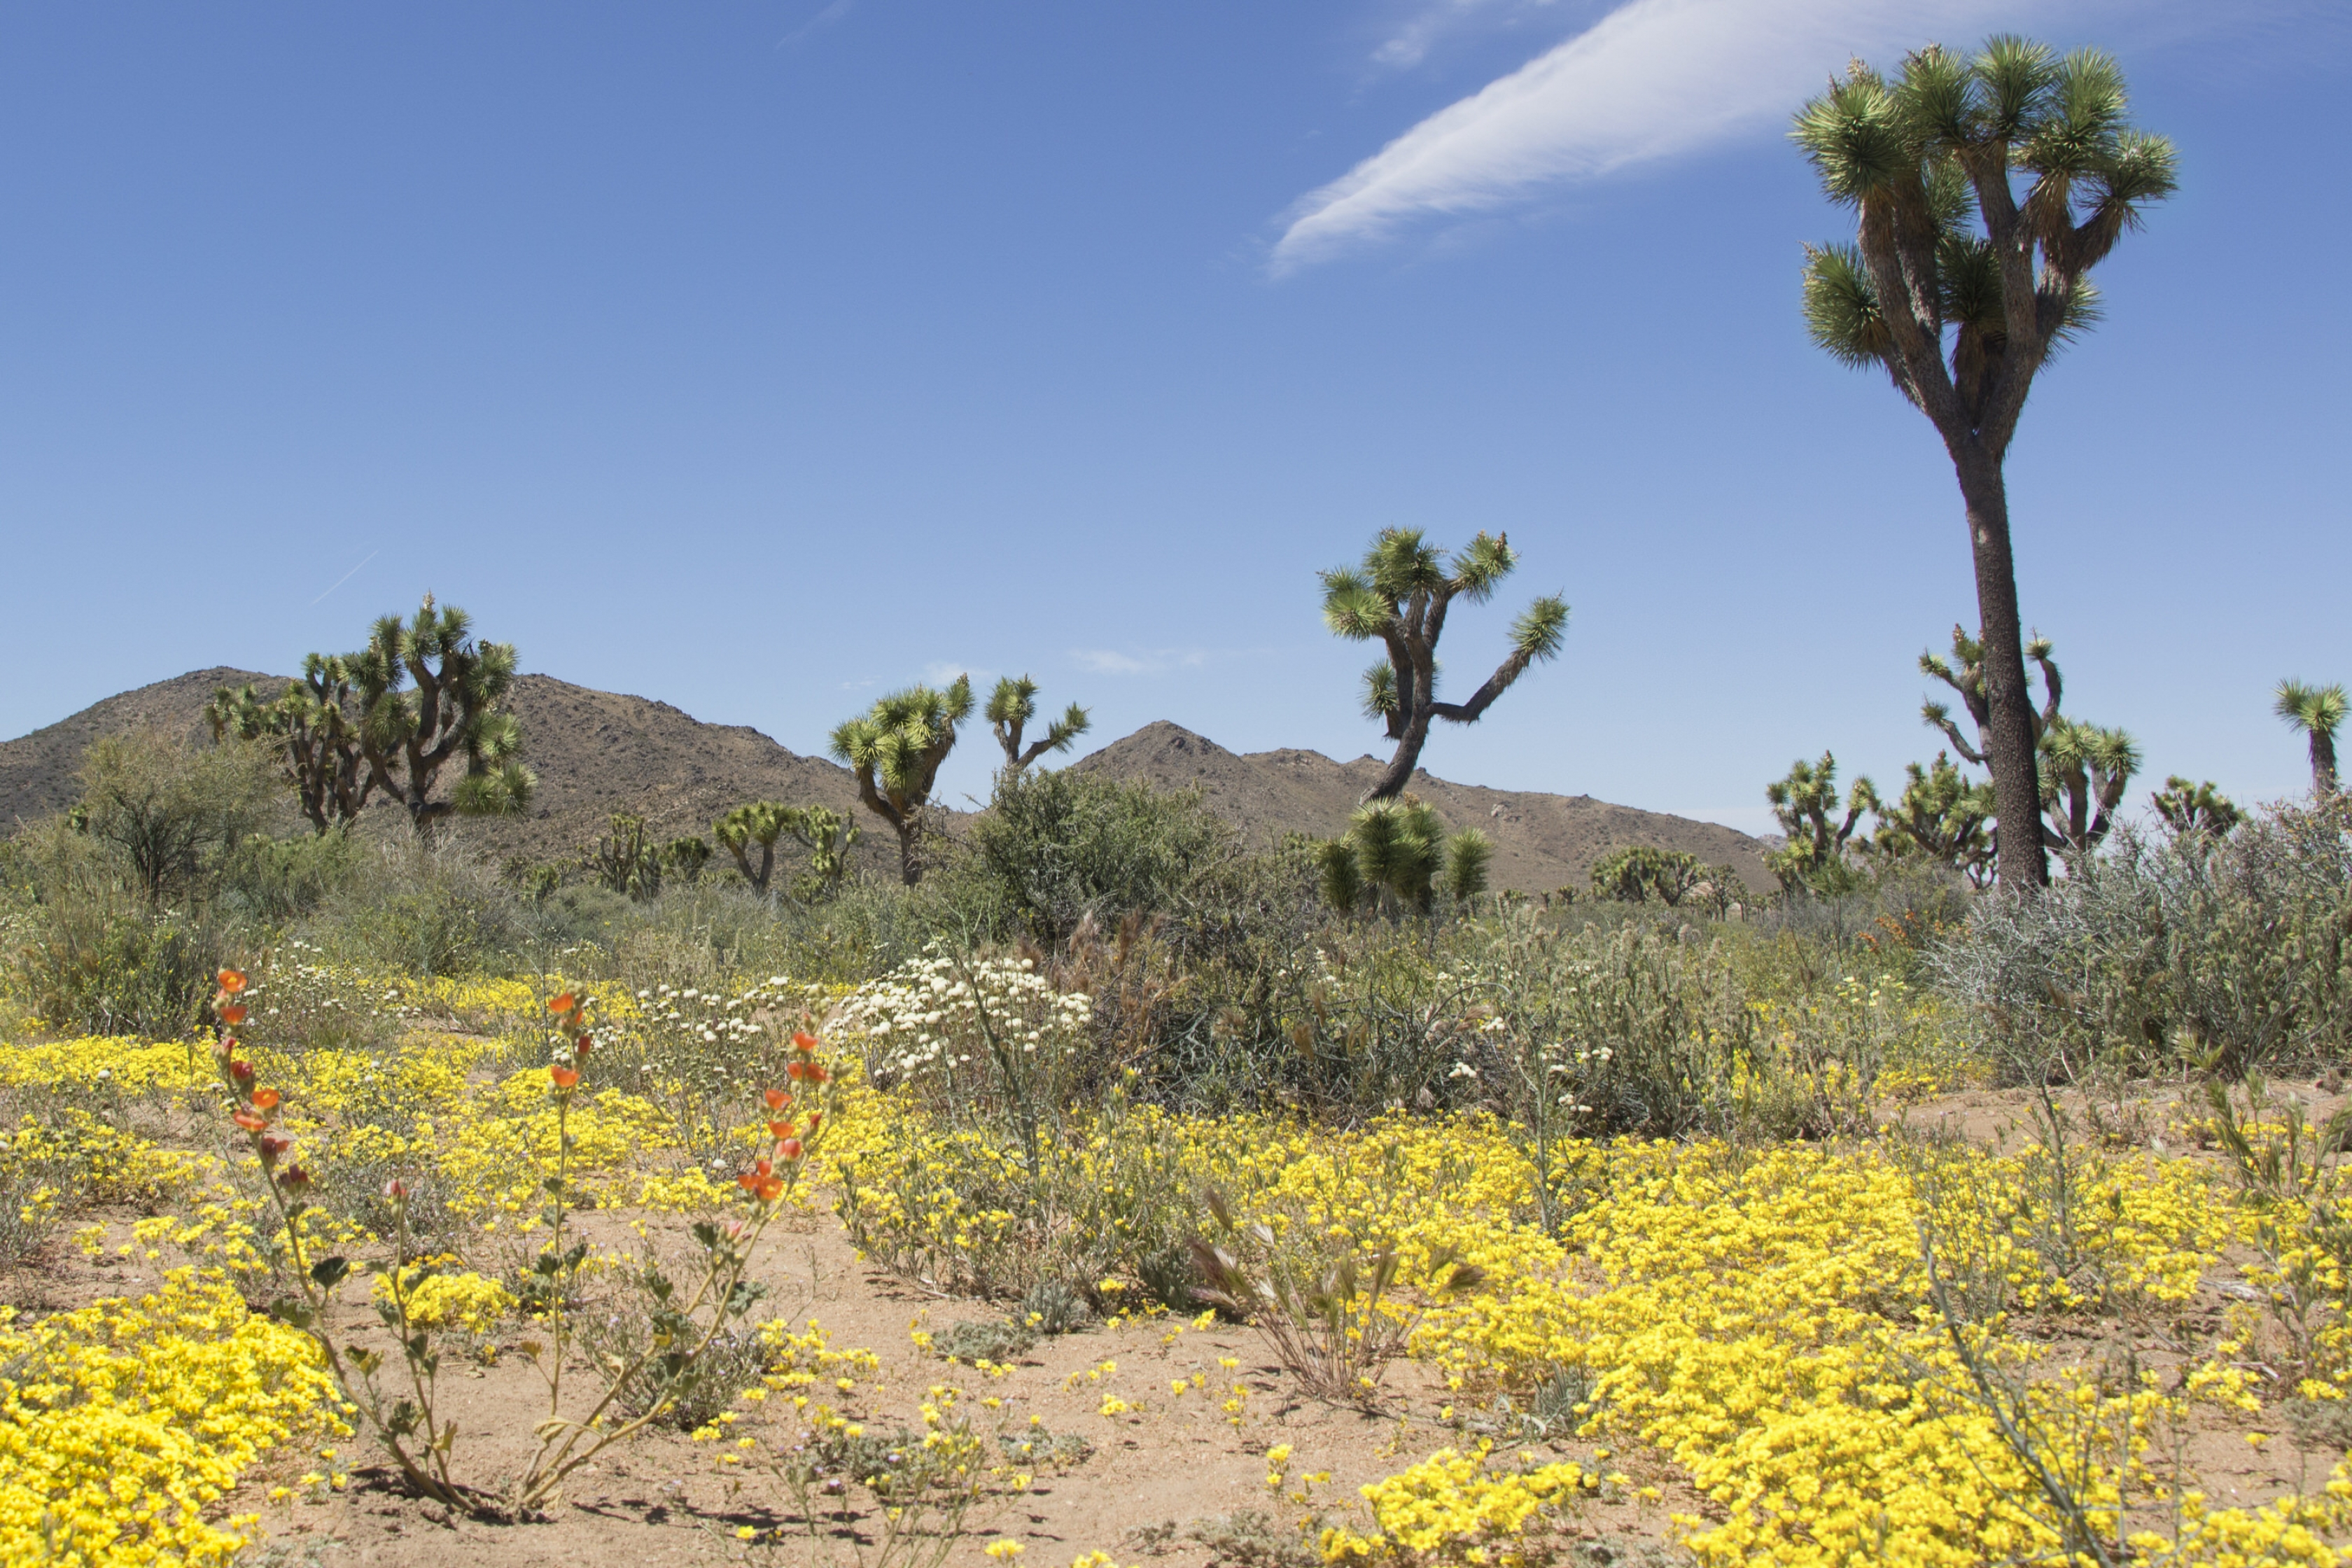 Red, white, and yellow wildflowers blossoming around tall Joshua Trees